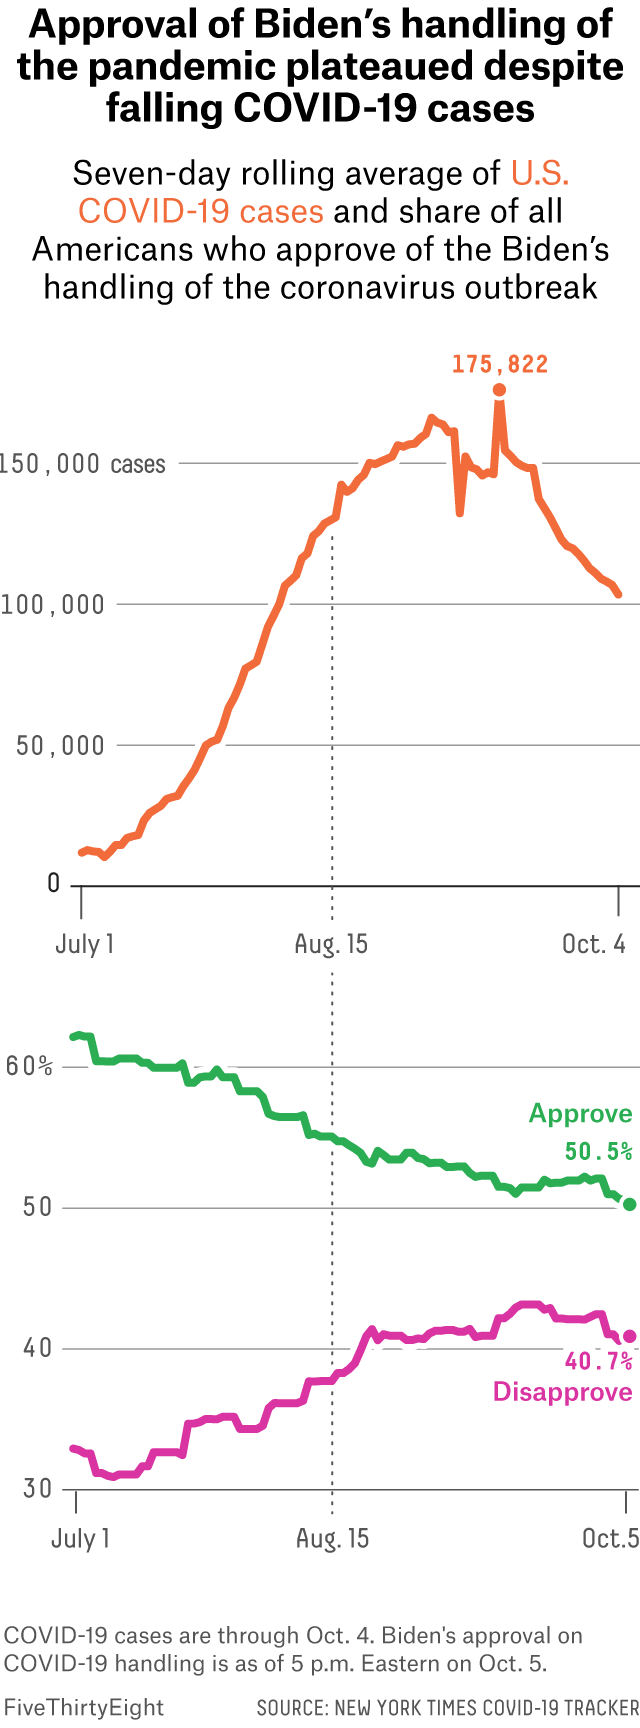 A line chart showing the seven-day rolling average of U.S. COVID-19 cases rising from July 1st and peaking mid-September. A line chart showing two lines for the share of Americans who approve and disapprove of Biden's handling of the pandemic. Biden's approval rating steadily decreases, while his disapproval rating steadily increases from July through the beginning of October.